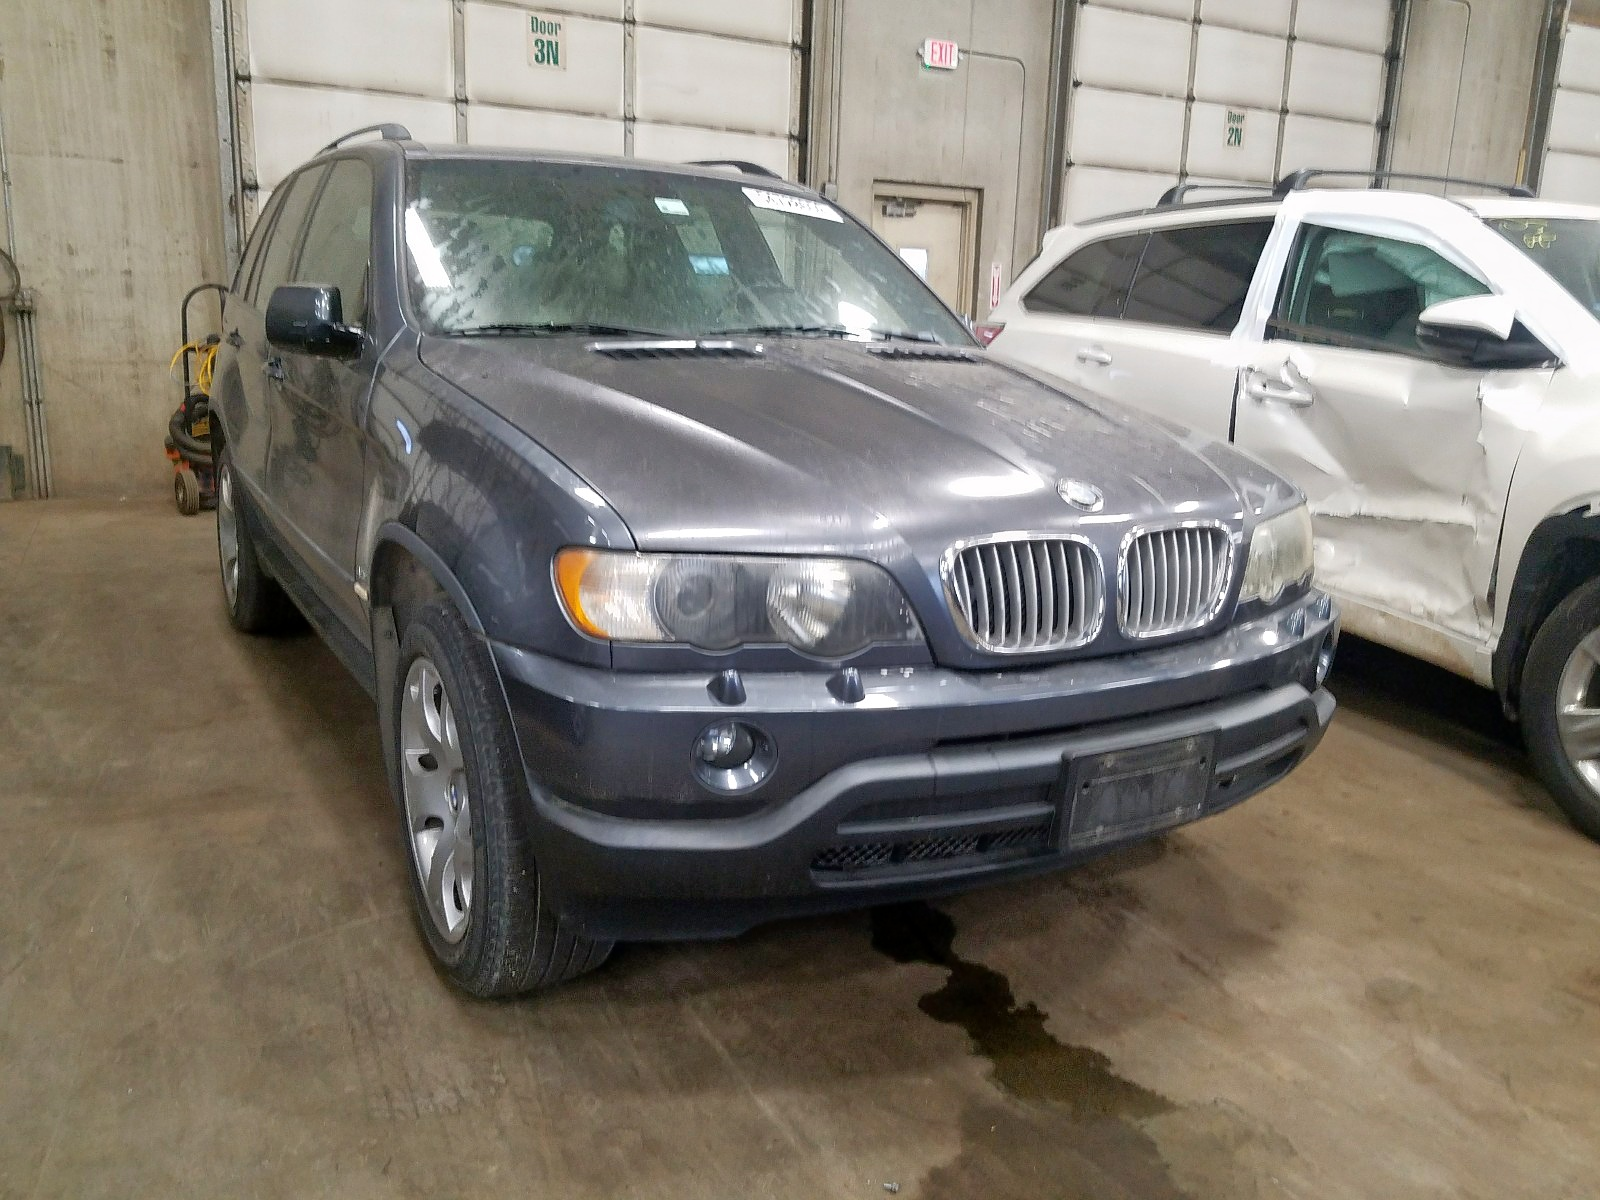 2003 Bmw X5 4.4I 4.4L Left View